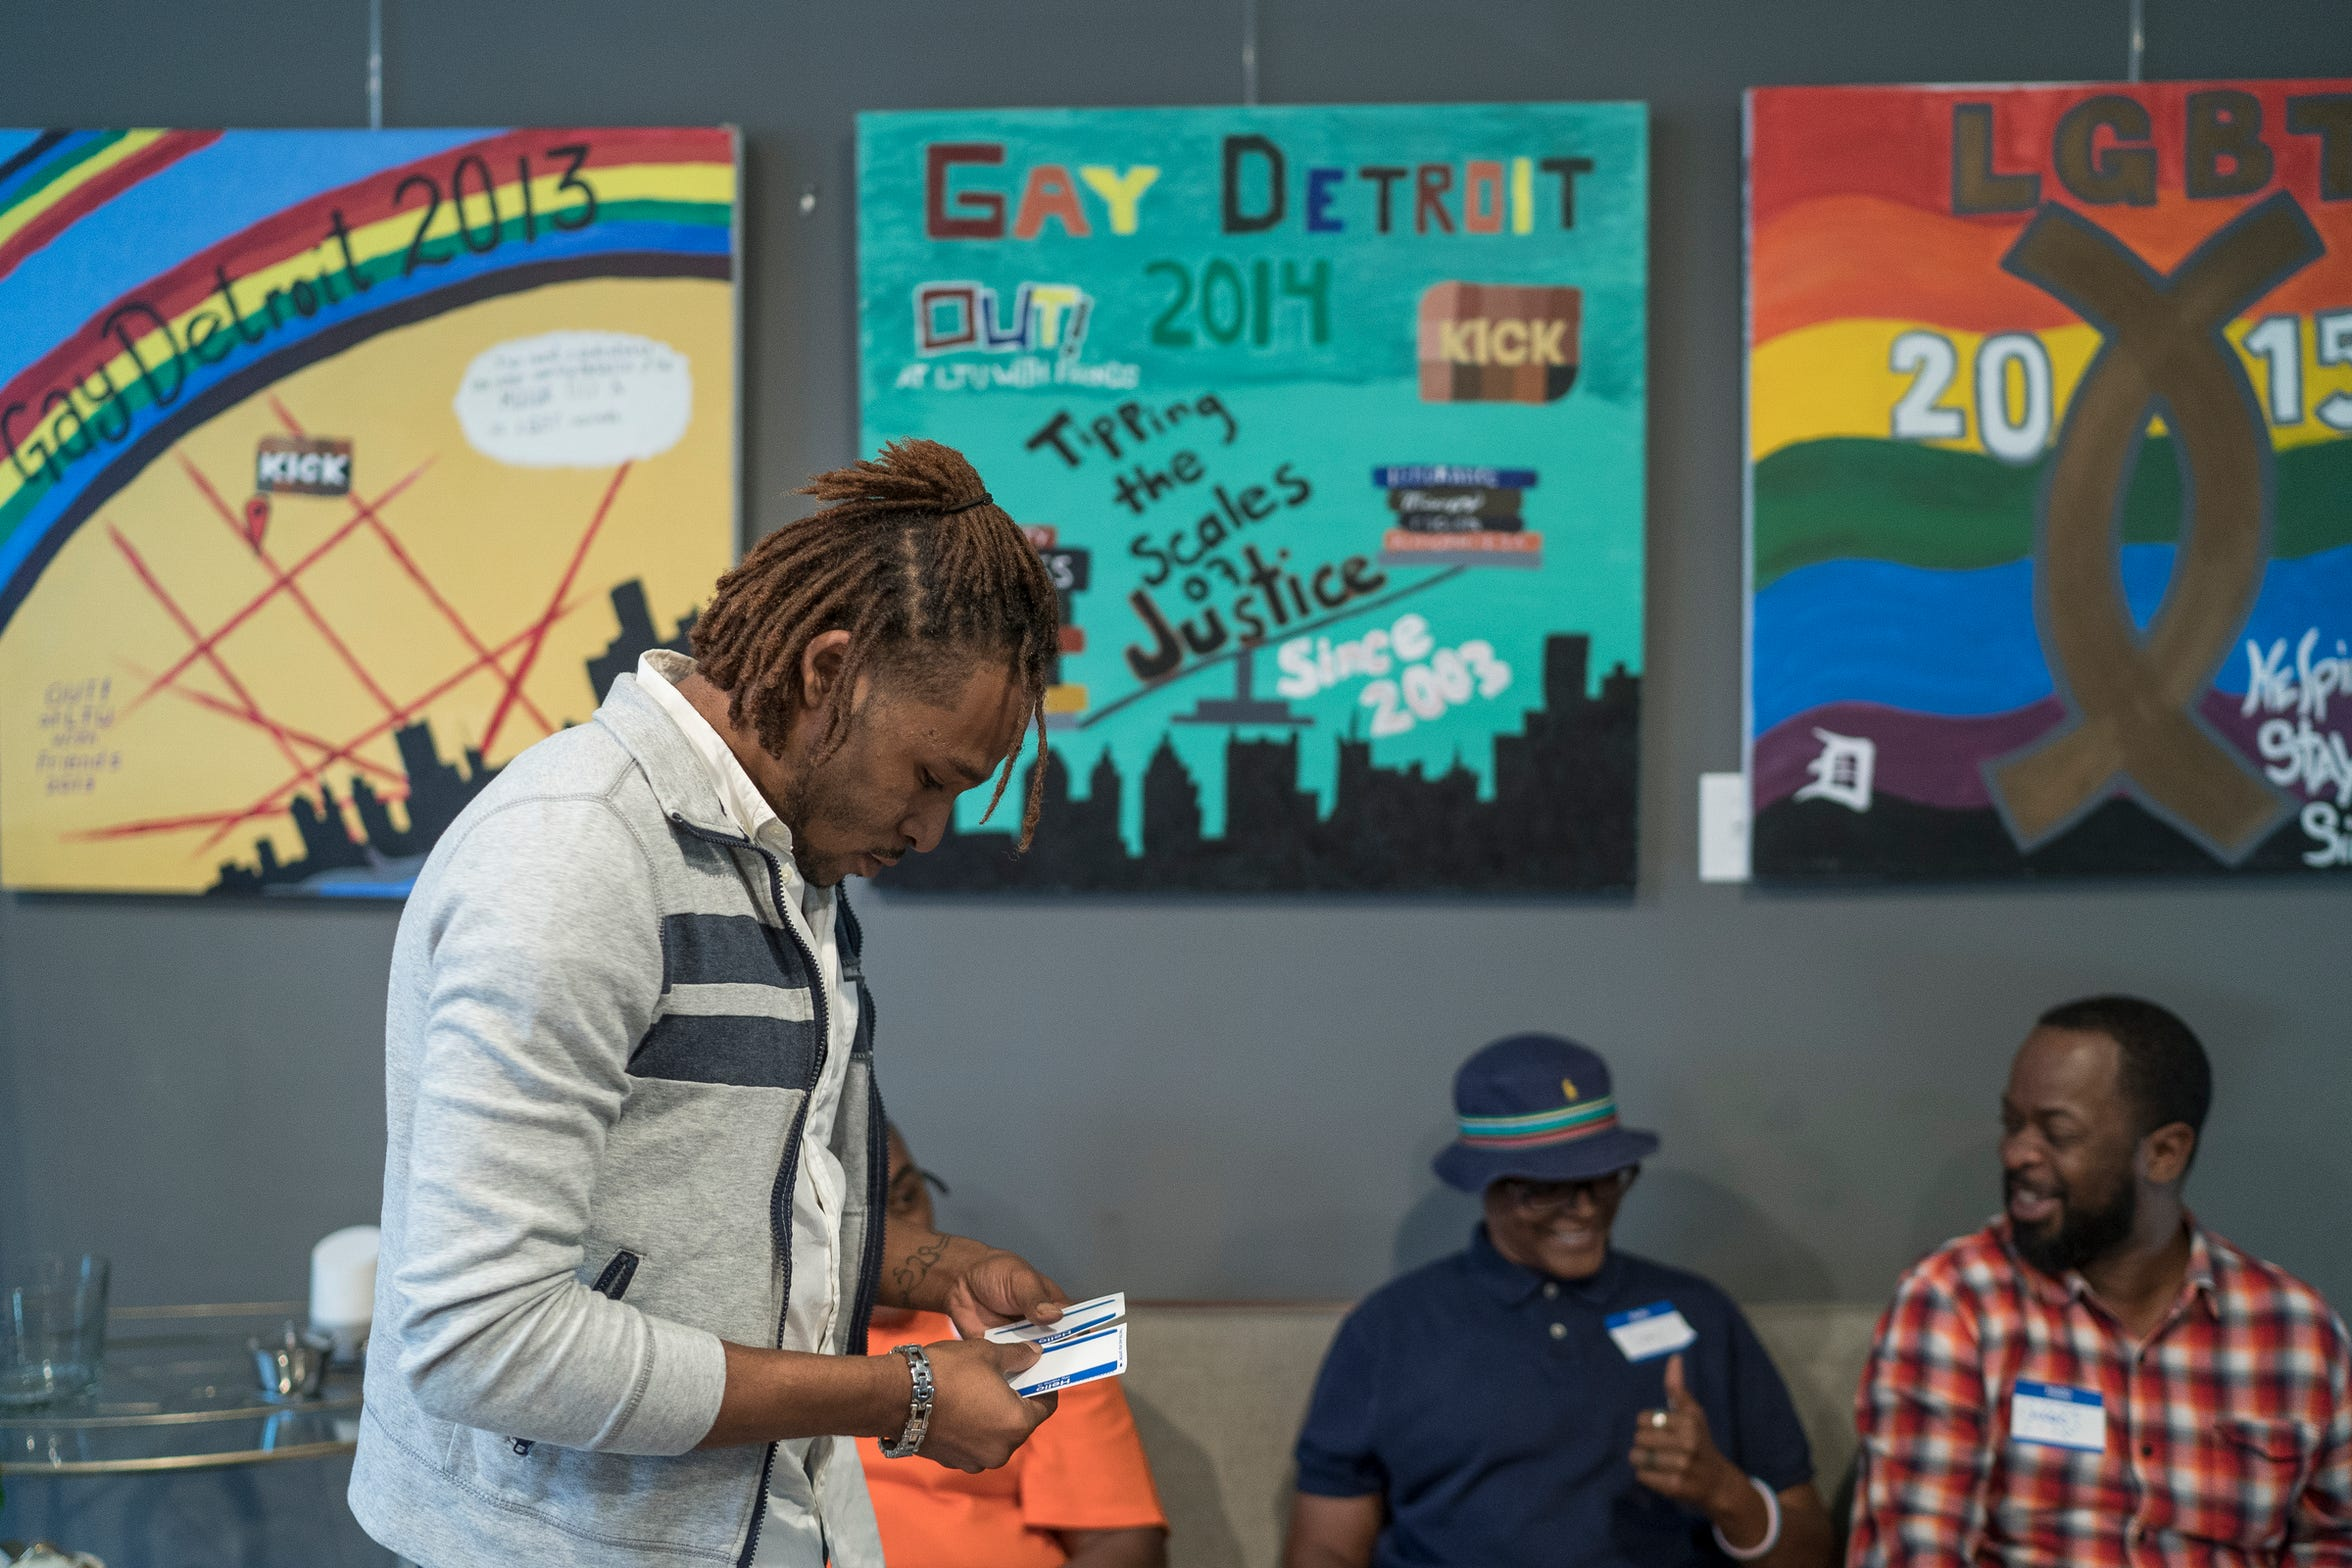 David Nelson picks up a name tag  just after he arrives for the Hotter Than July 2019 kickoff event at LGBT Detroit in Detroit, Tuesday, October 2, 2018.